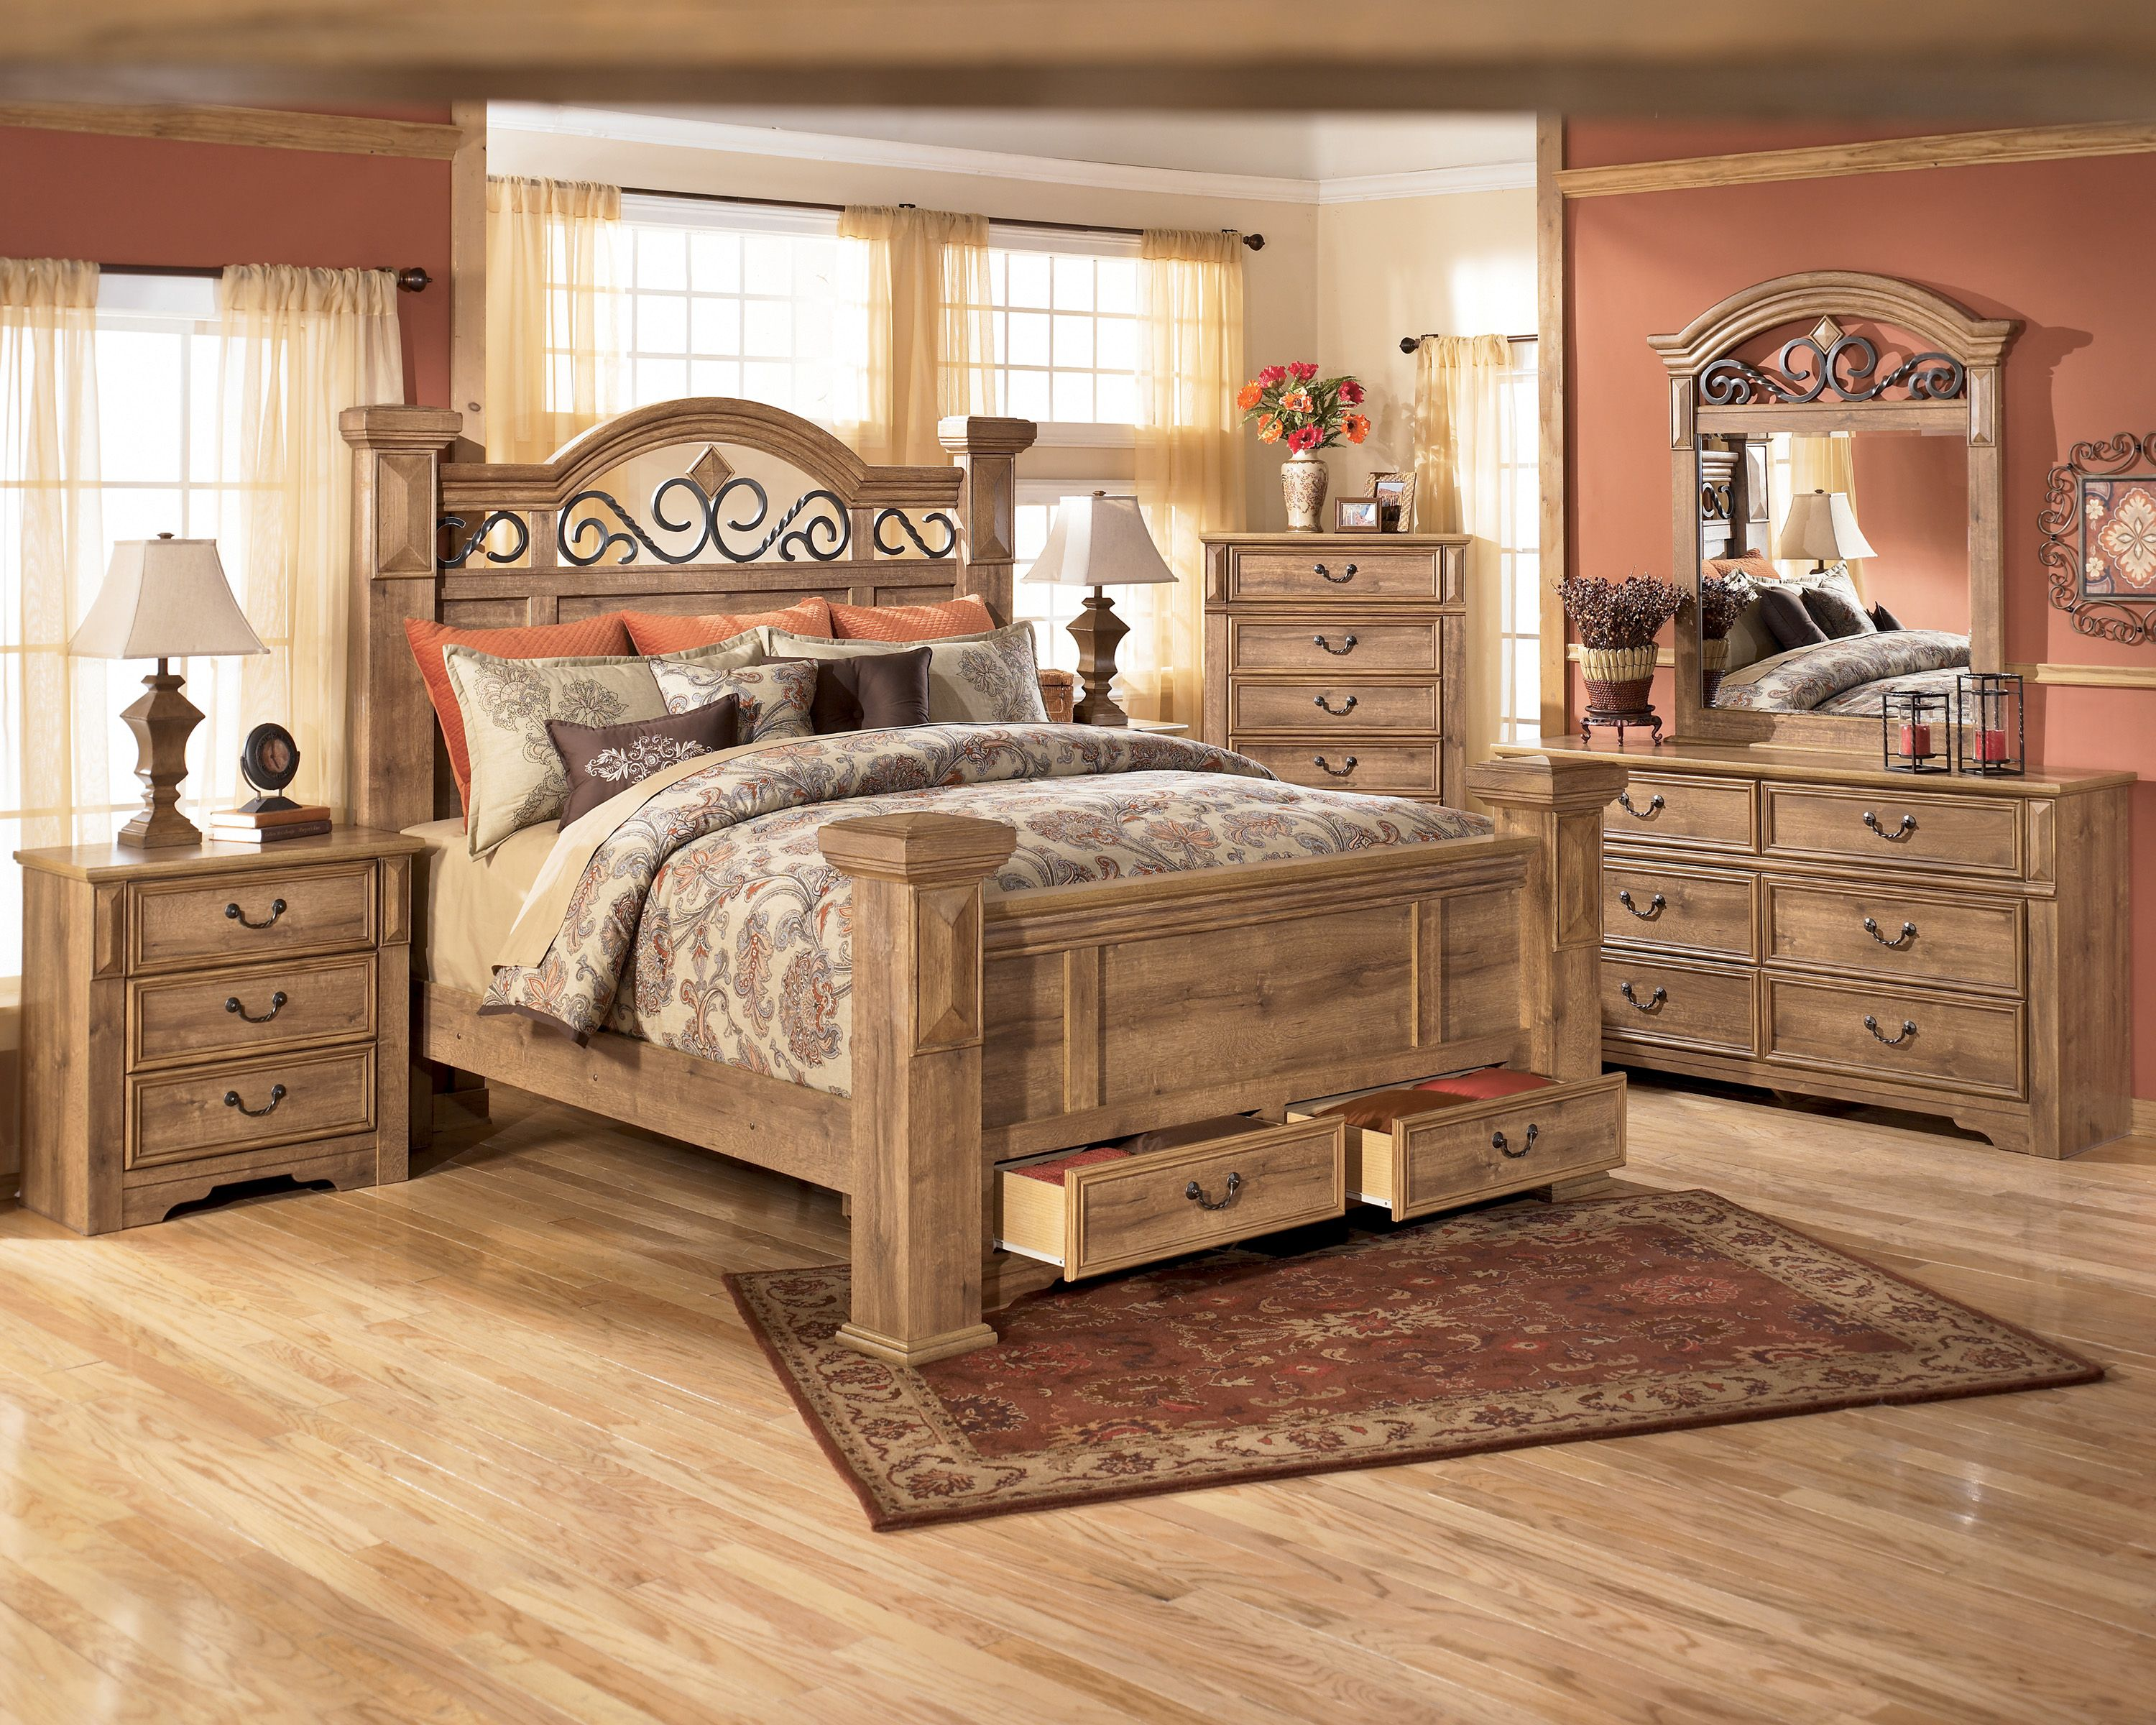 Best King Size Bed Set Rosalinda | King Beds | Pinterest | King ...